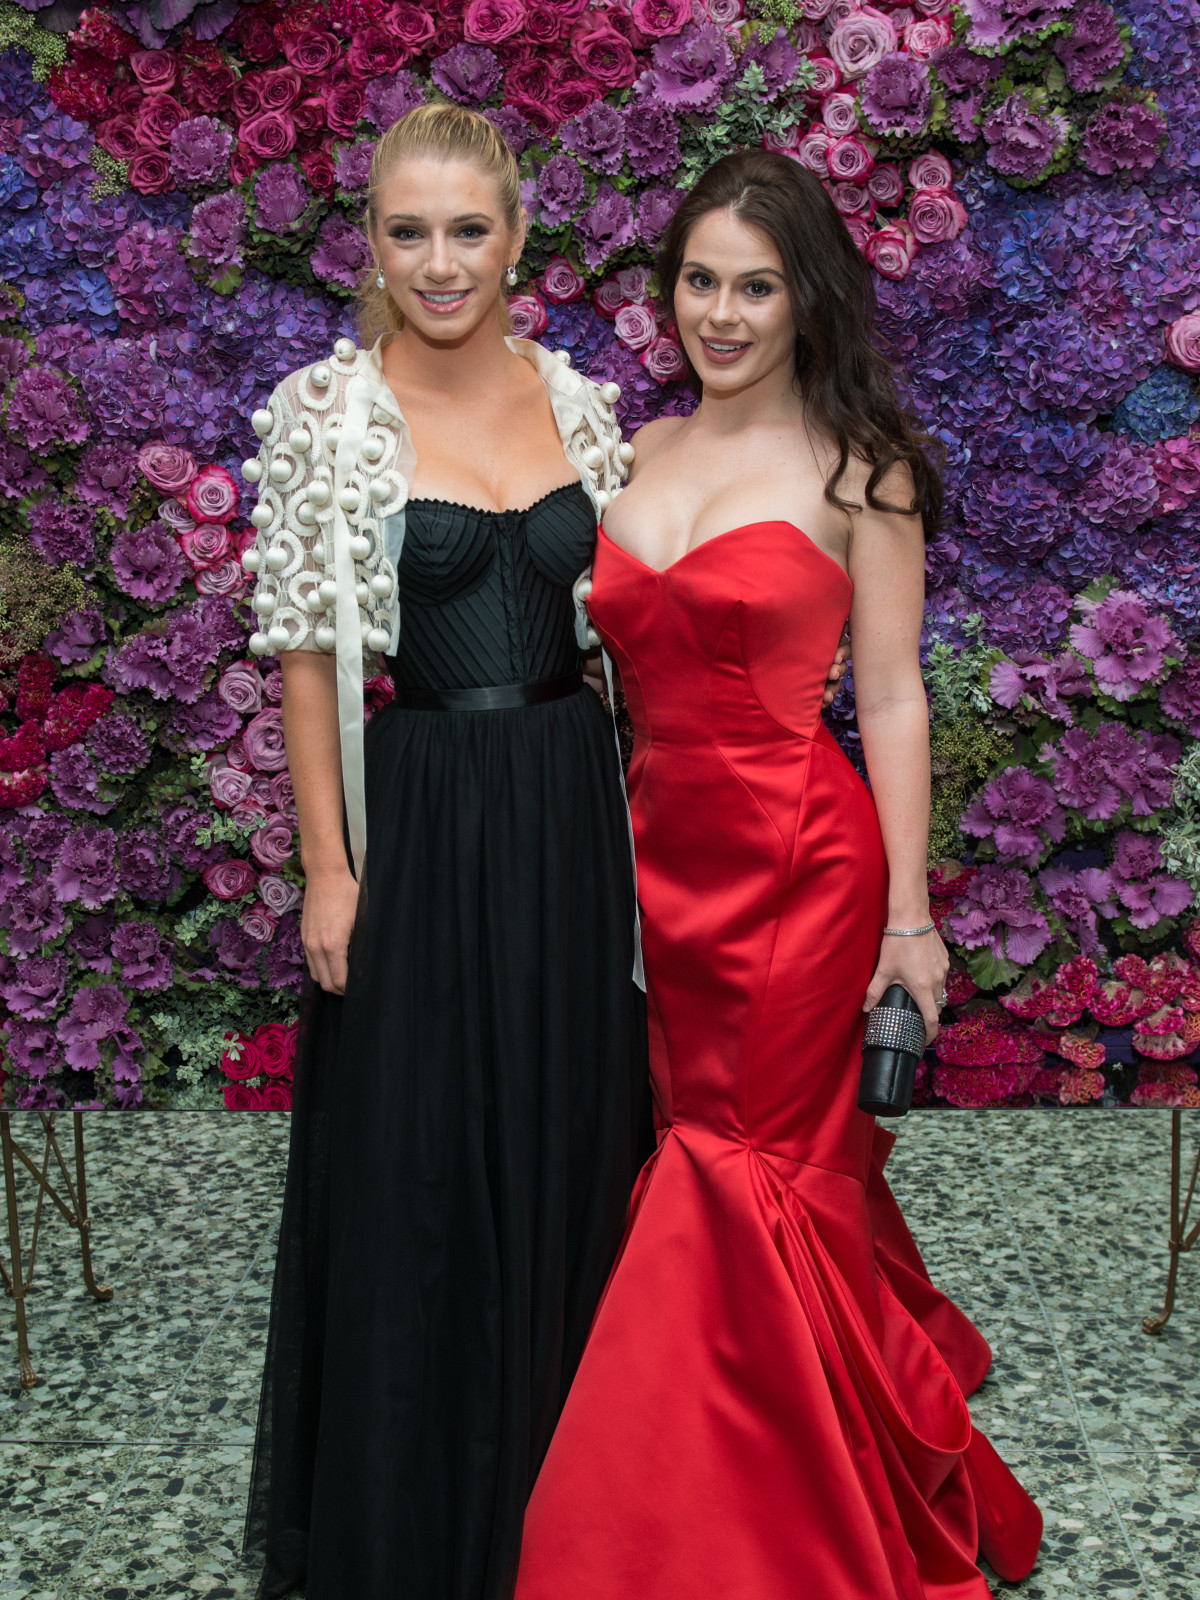 Alanna Flores, Meredith Flores daughters at MFAH Grand Gala Ball 2017